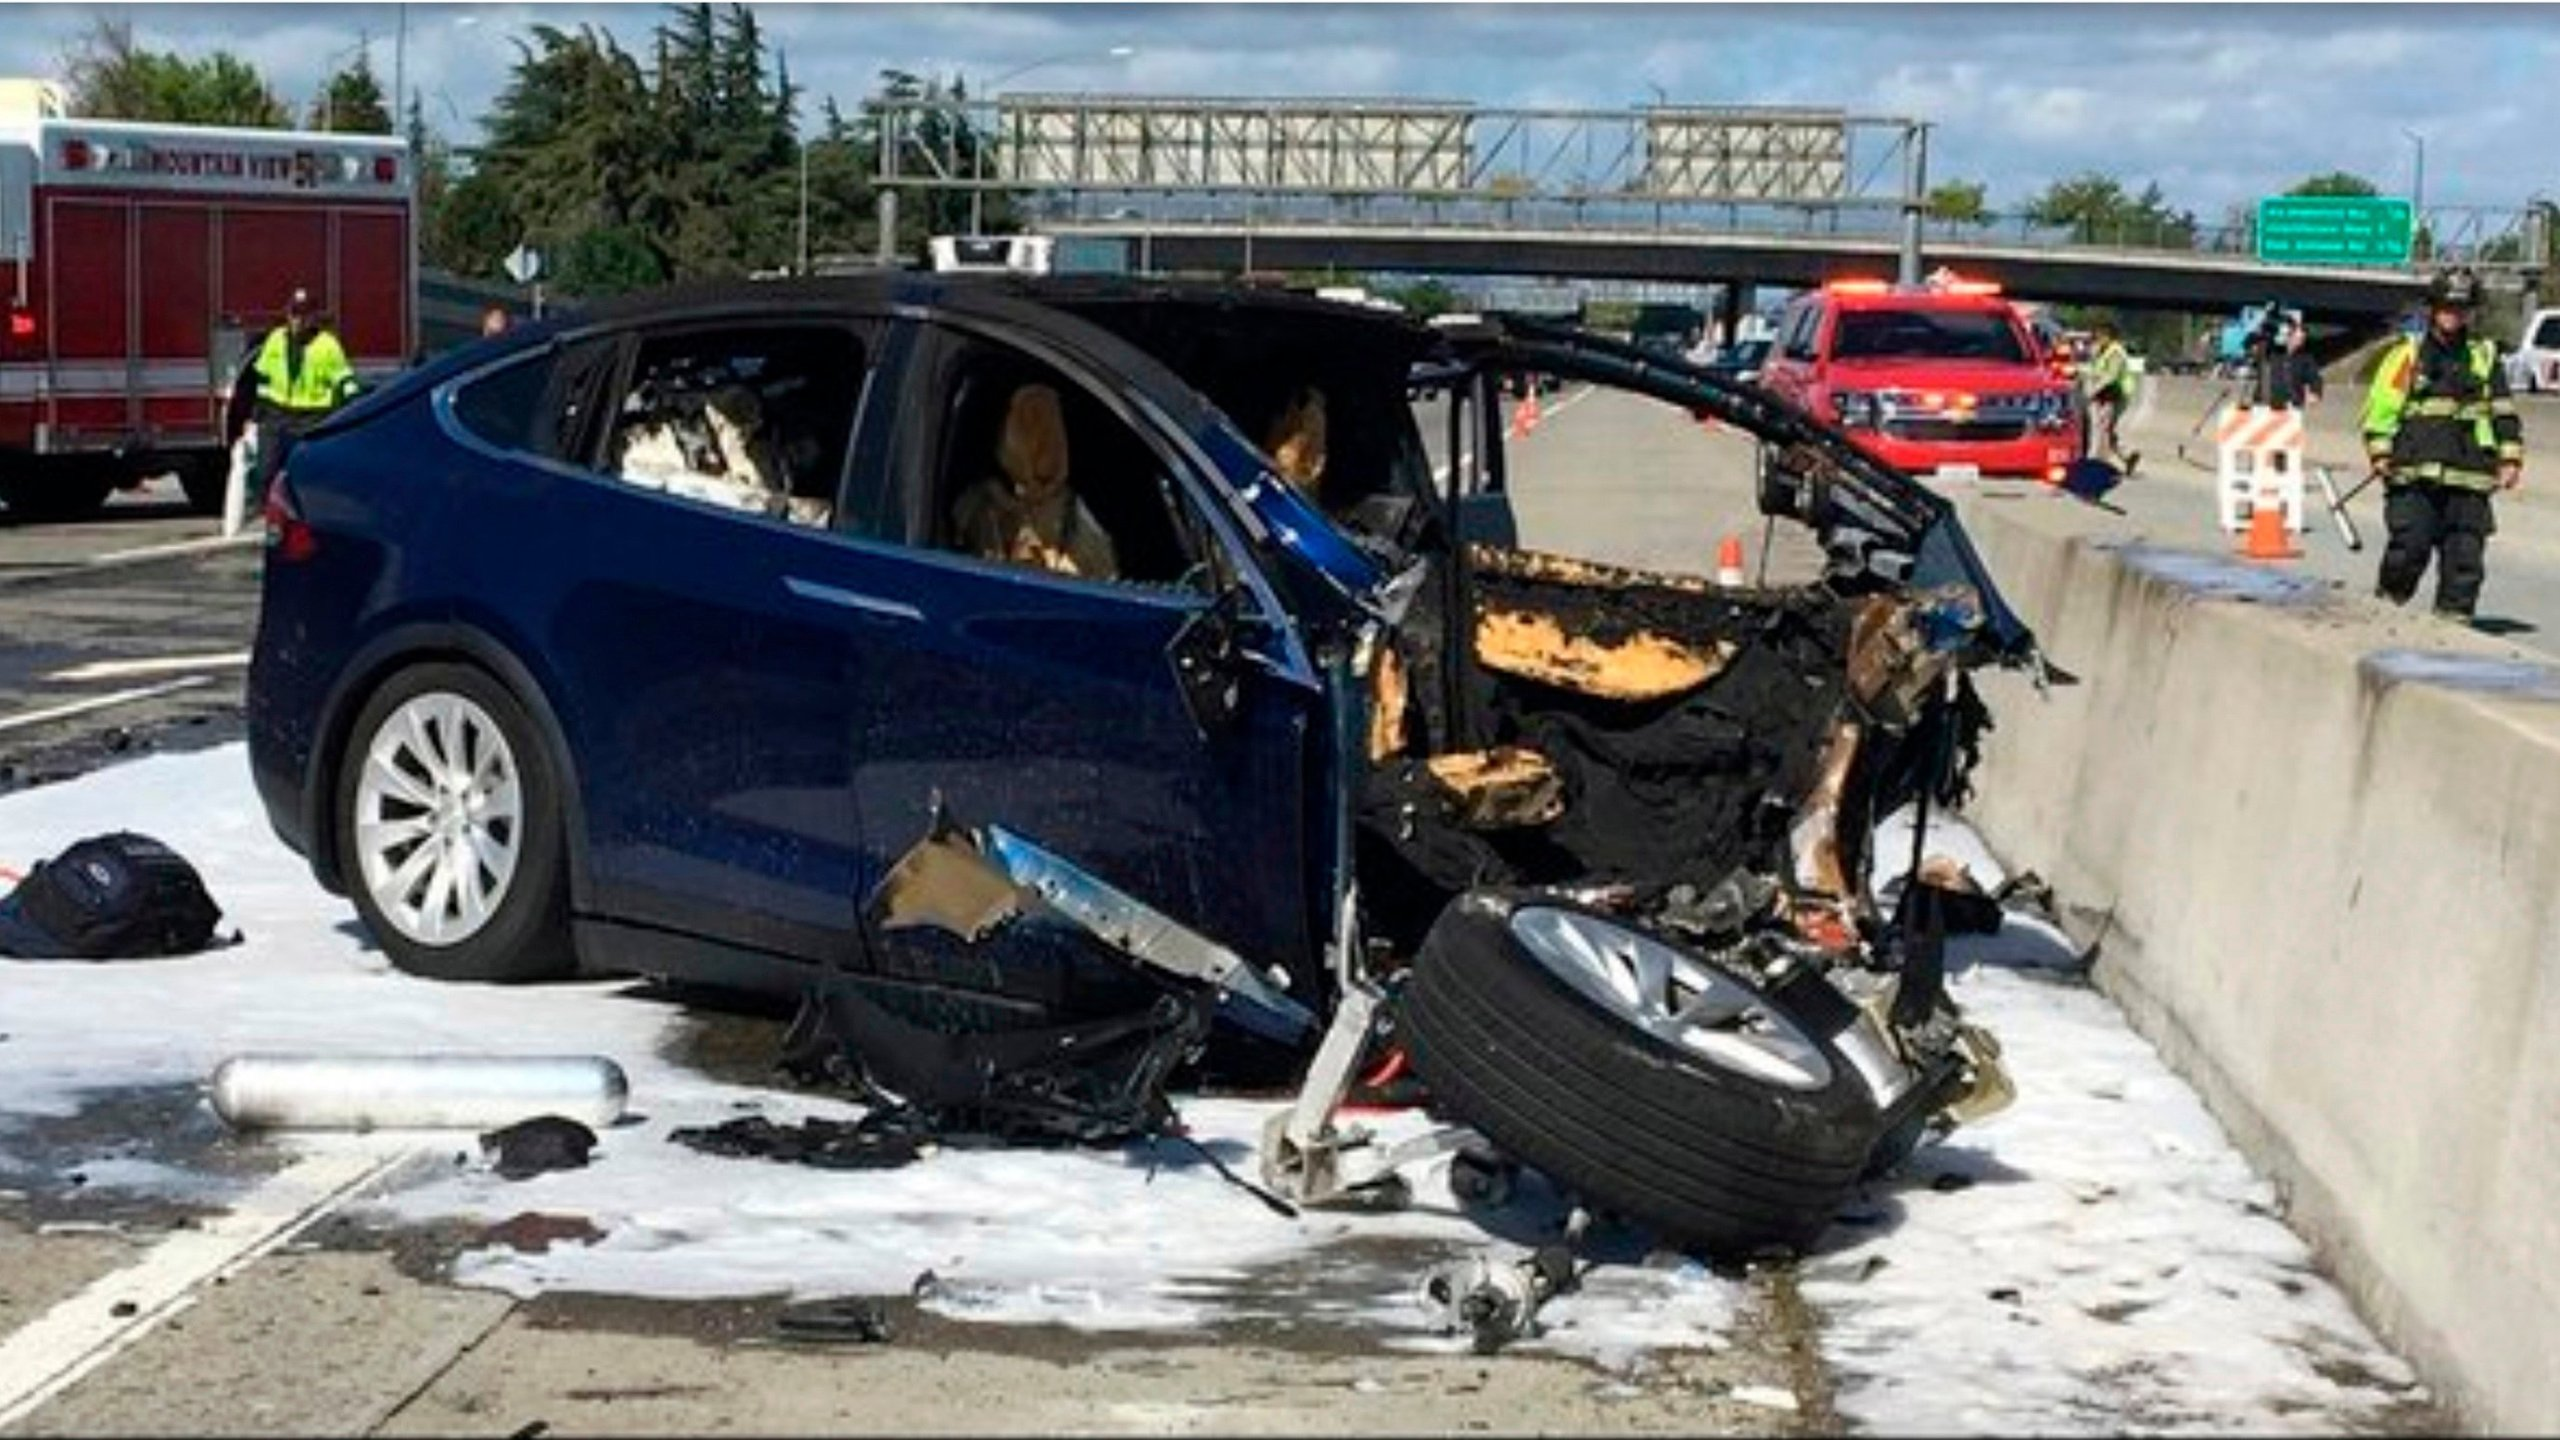 The family of an Apple engineer killed in a crash of his Tesla last year is suing the automaker, saying the Autopilot feature on the car caused his death. (Credit: Eric Marrapodi/CNN)